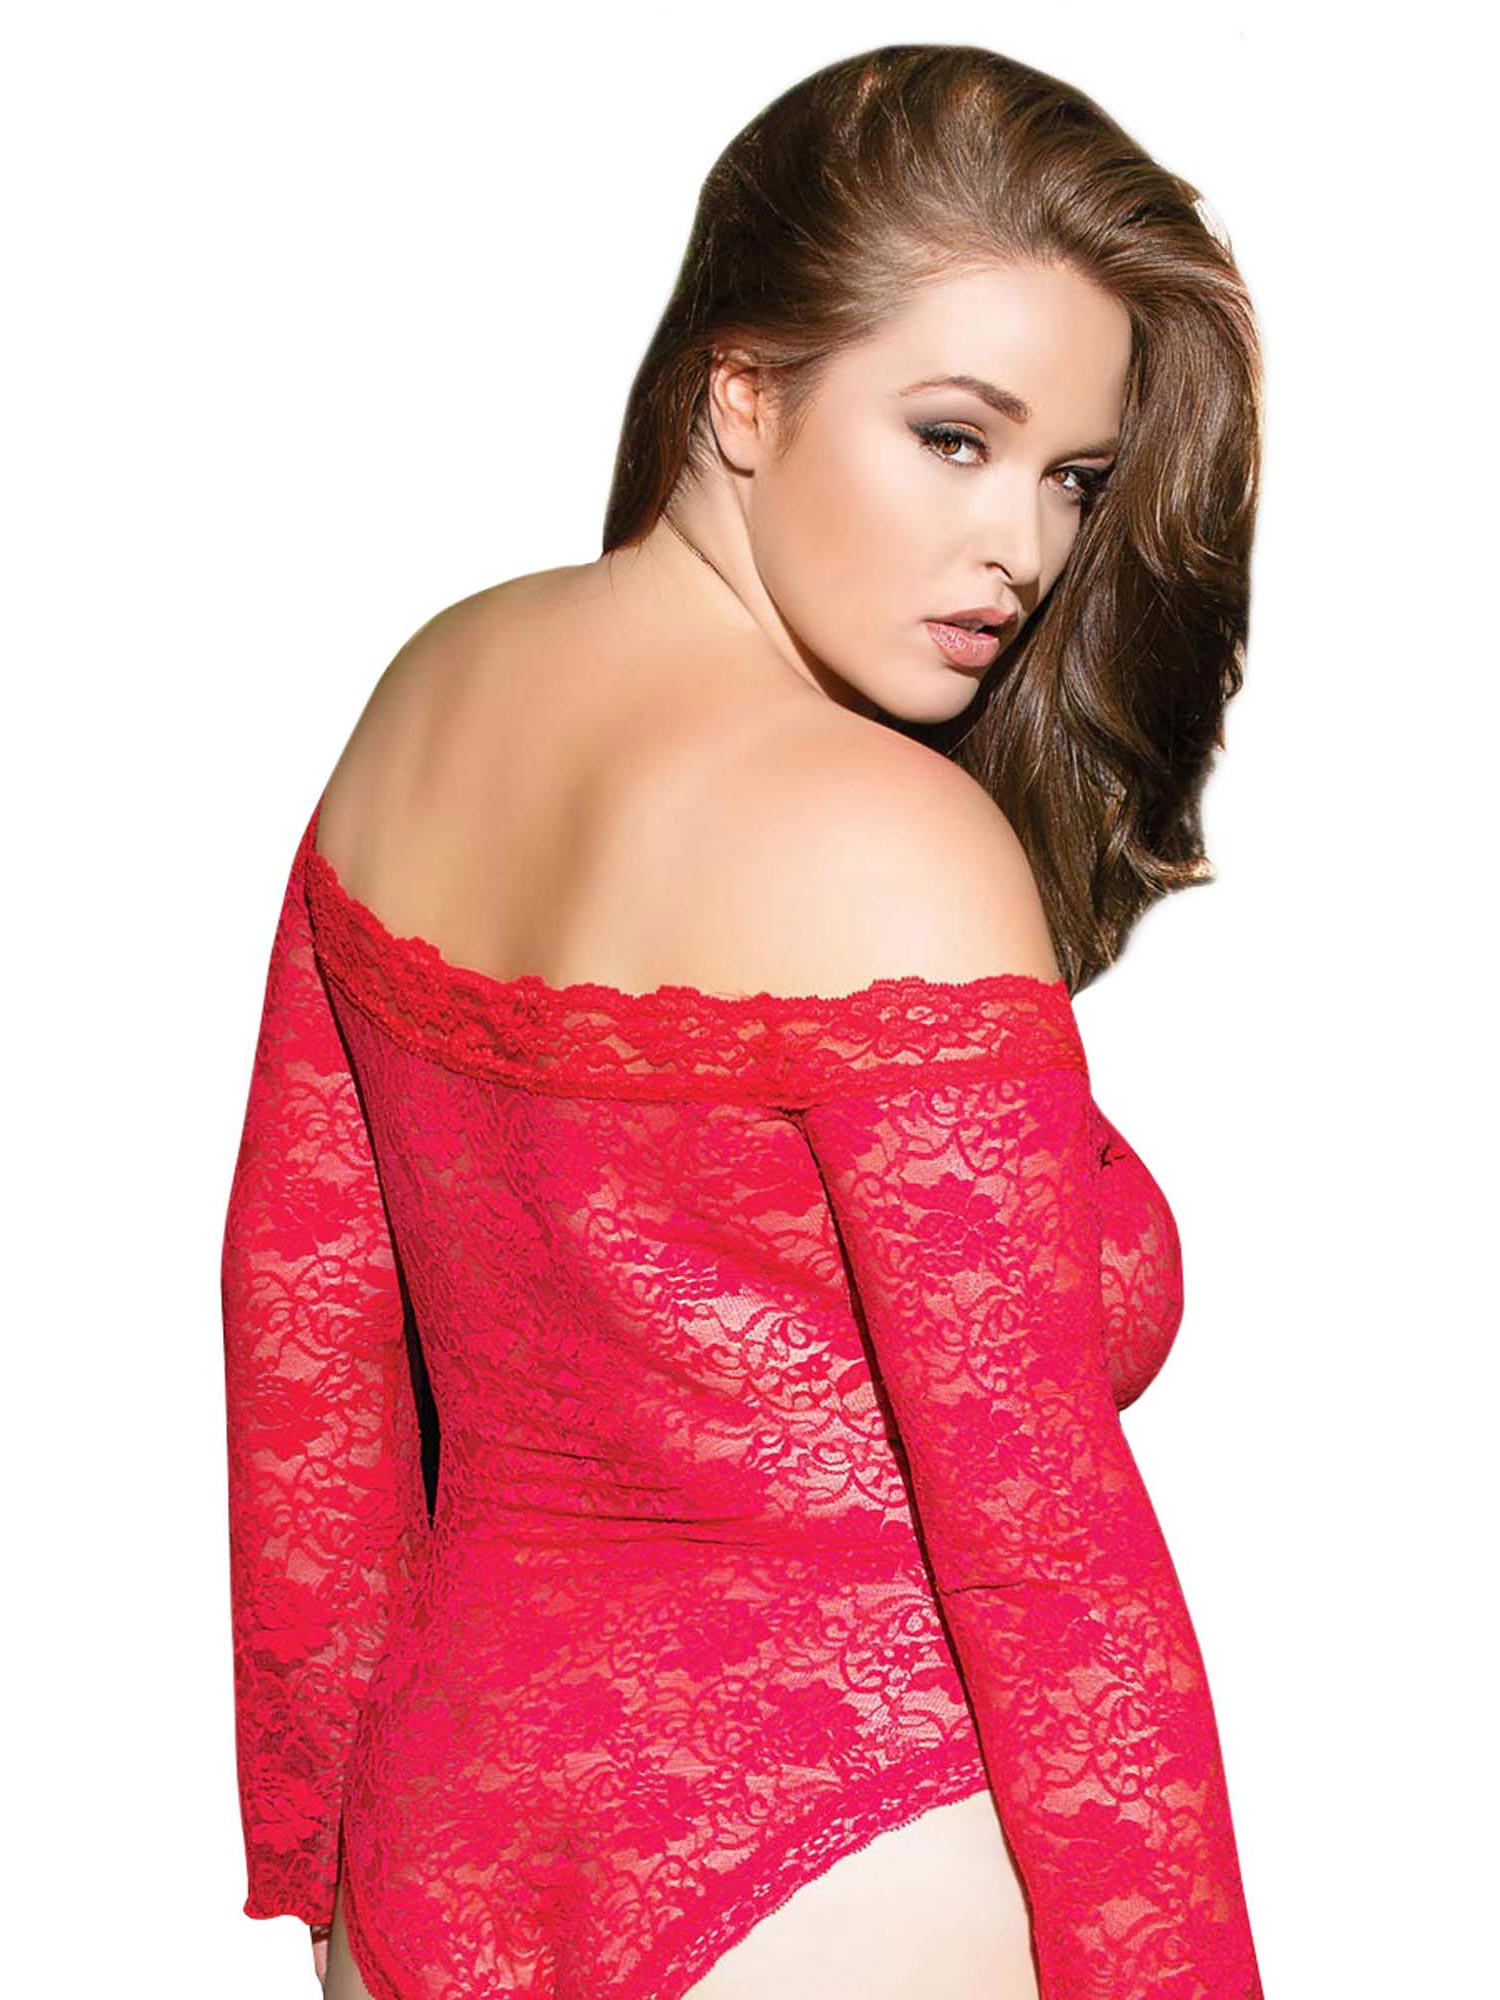 Plus Size BBW Lace Off Shoulder Teddy Lingerie- Fits Size 14-20 | eBay